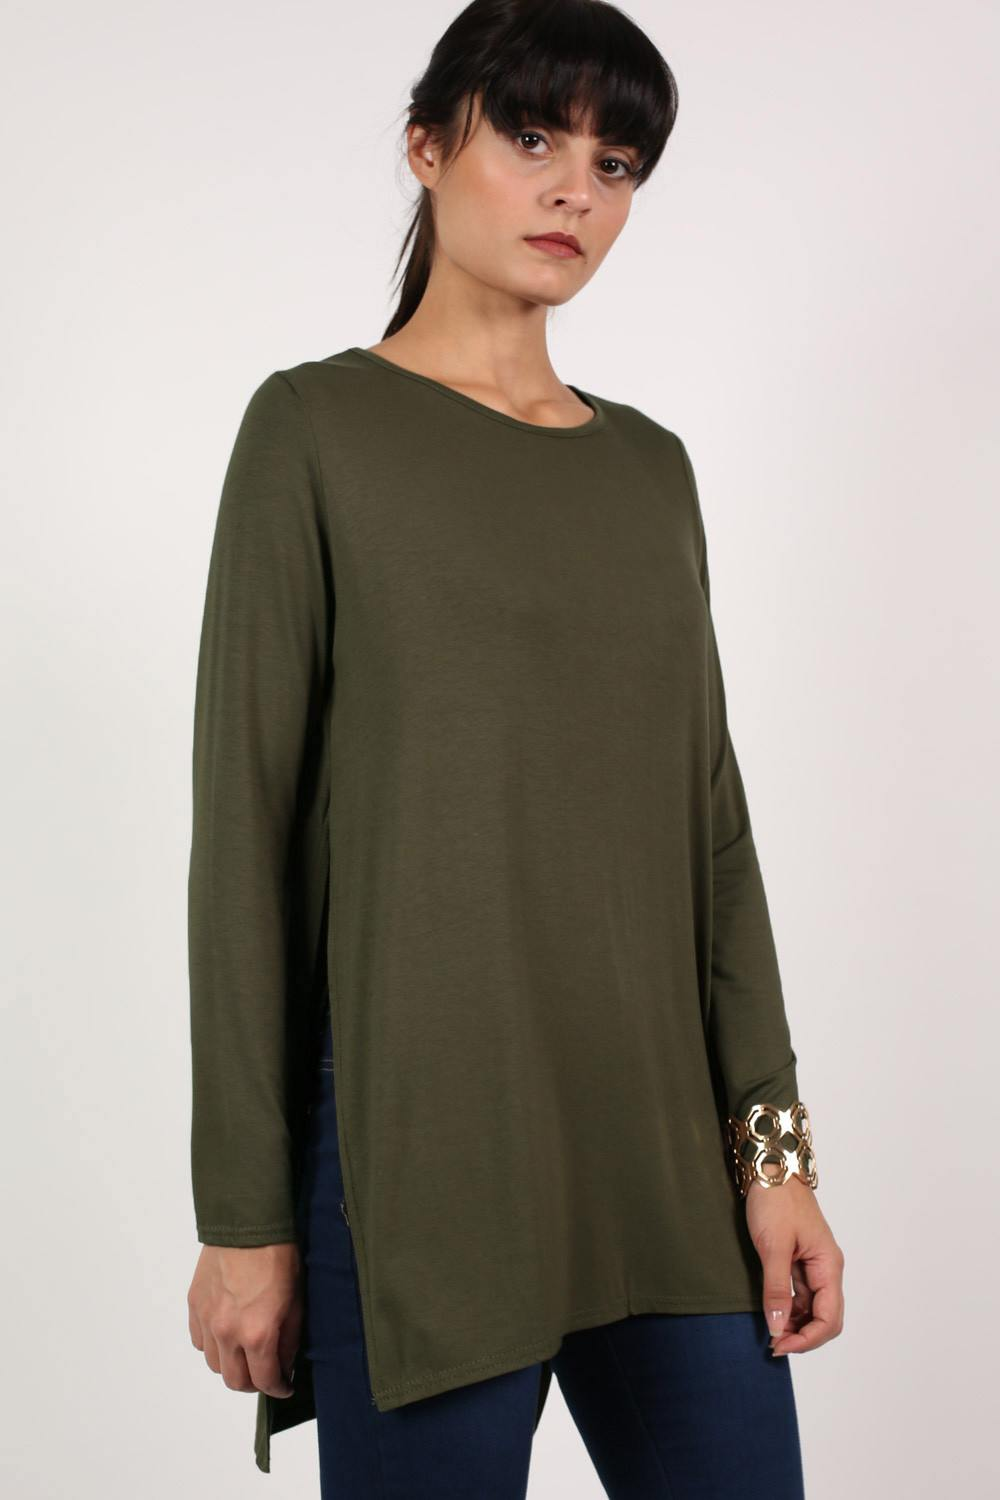 Long Sleeve Side Split Top in Khaki Green 0